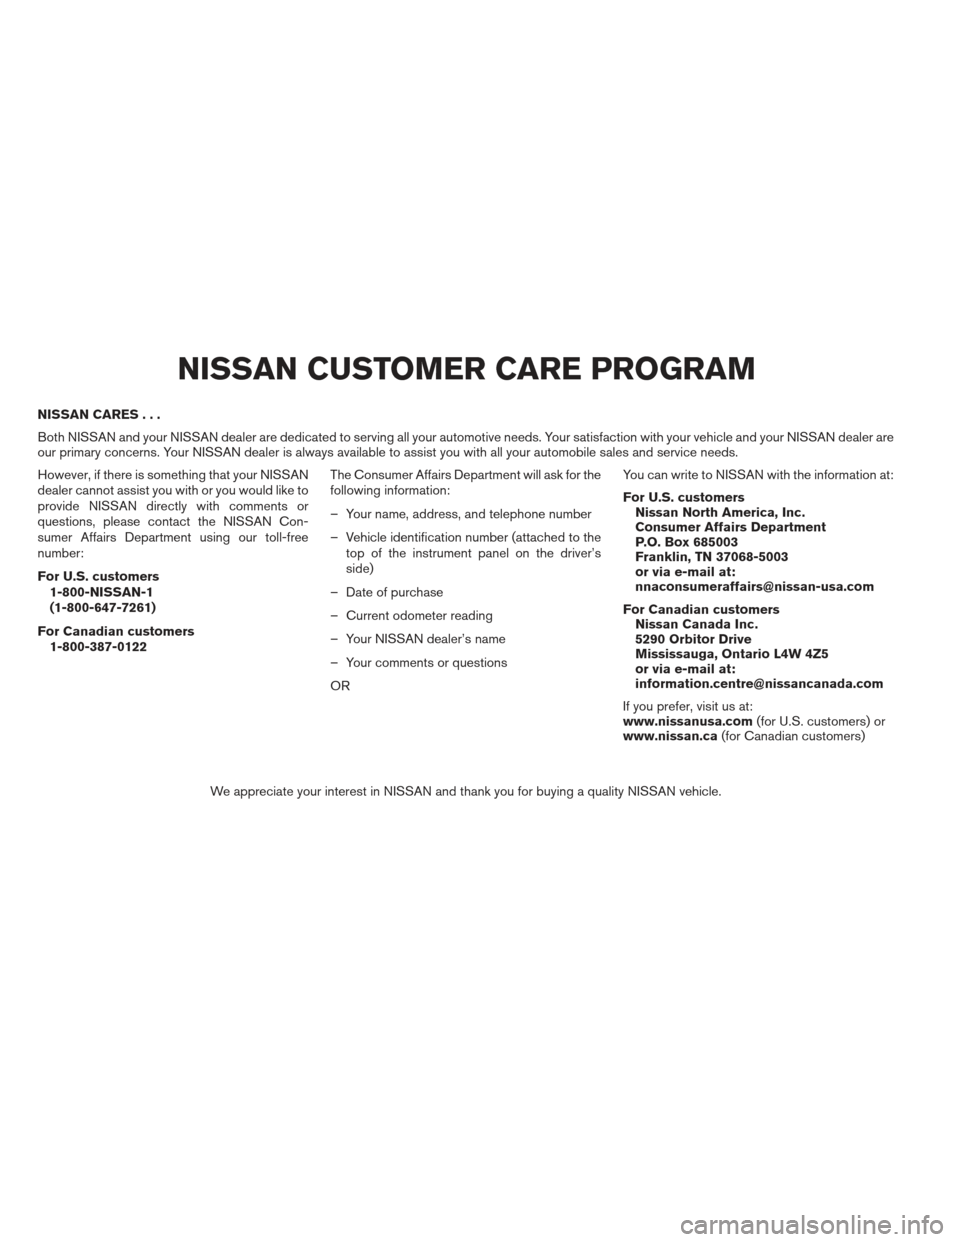 NISSAN SENTRA 2013 B17 / 7.G Owners Manual NISSAN CARES... Both NISSAN and your NISSAN dealer are dedicated to serving all your automotive needs. Your satisfaction with your vehicle and your NISSAN dealer are our primary concerns. Your NISSAN